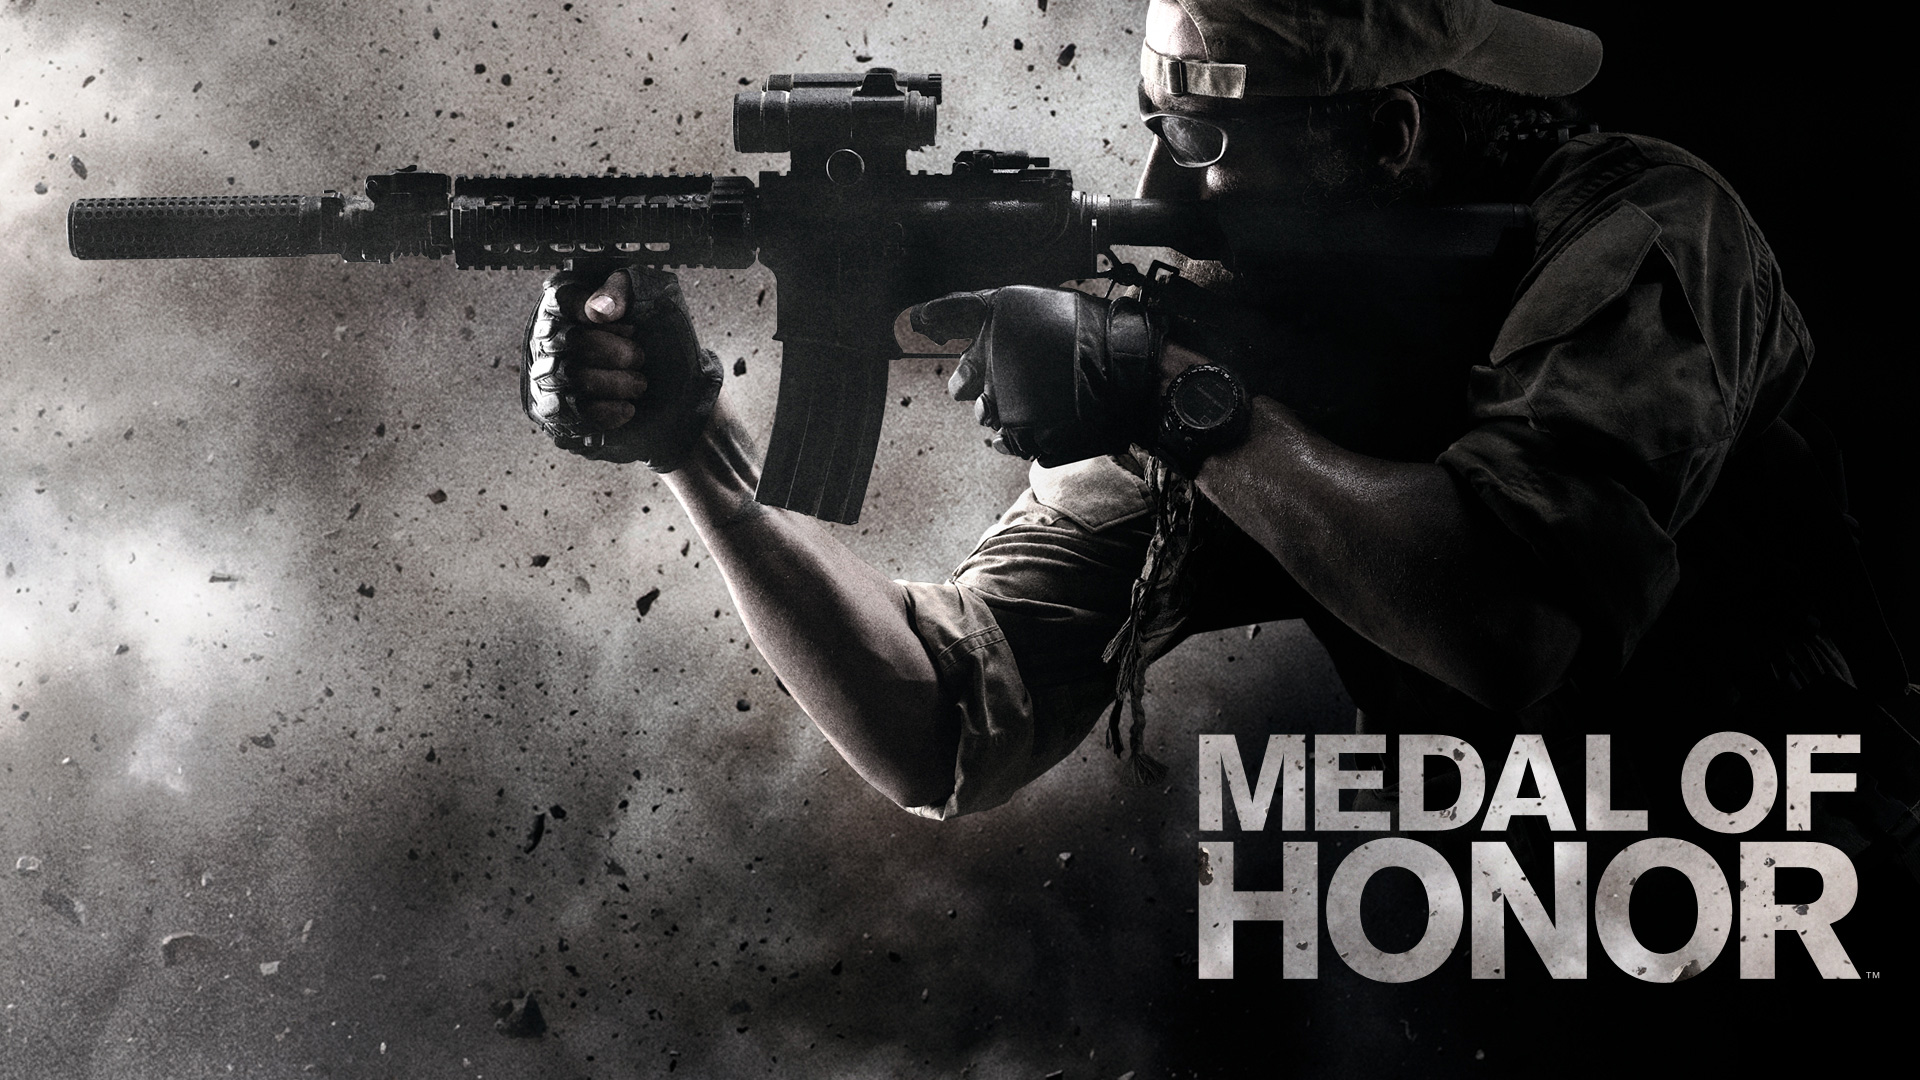 Free Medal of Honor Wallpaper in 1920x1080